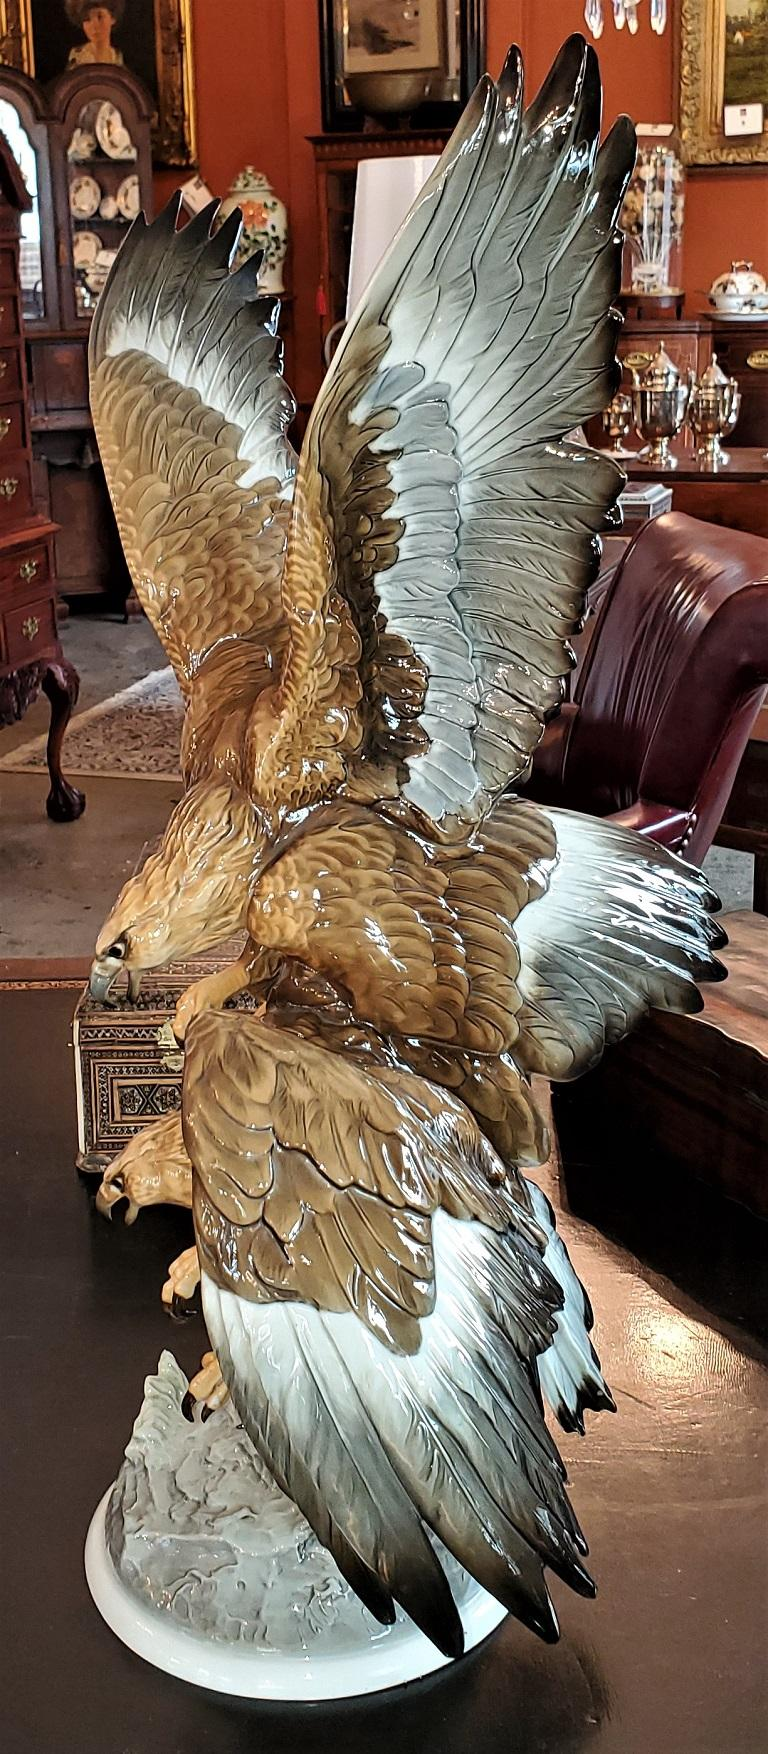 20C Selb German Porcelain Pair of Golden Eagles Sculpture In Excellent Condition For Sale In Dallas, TX